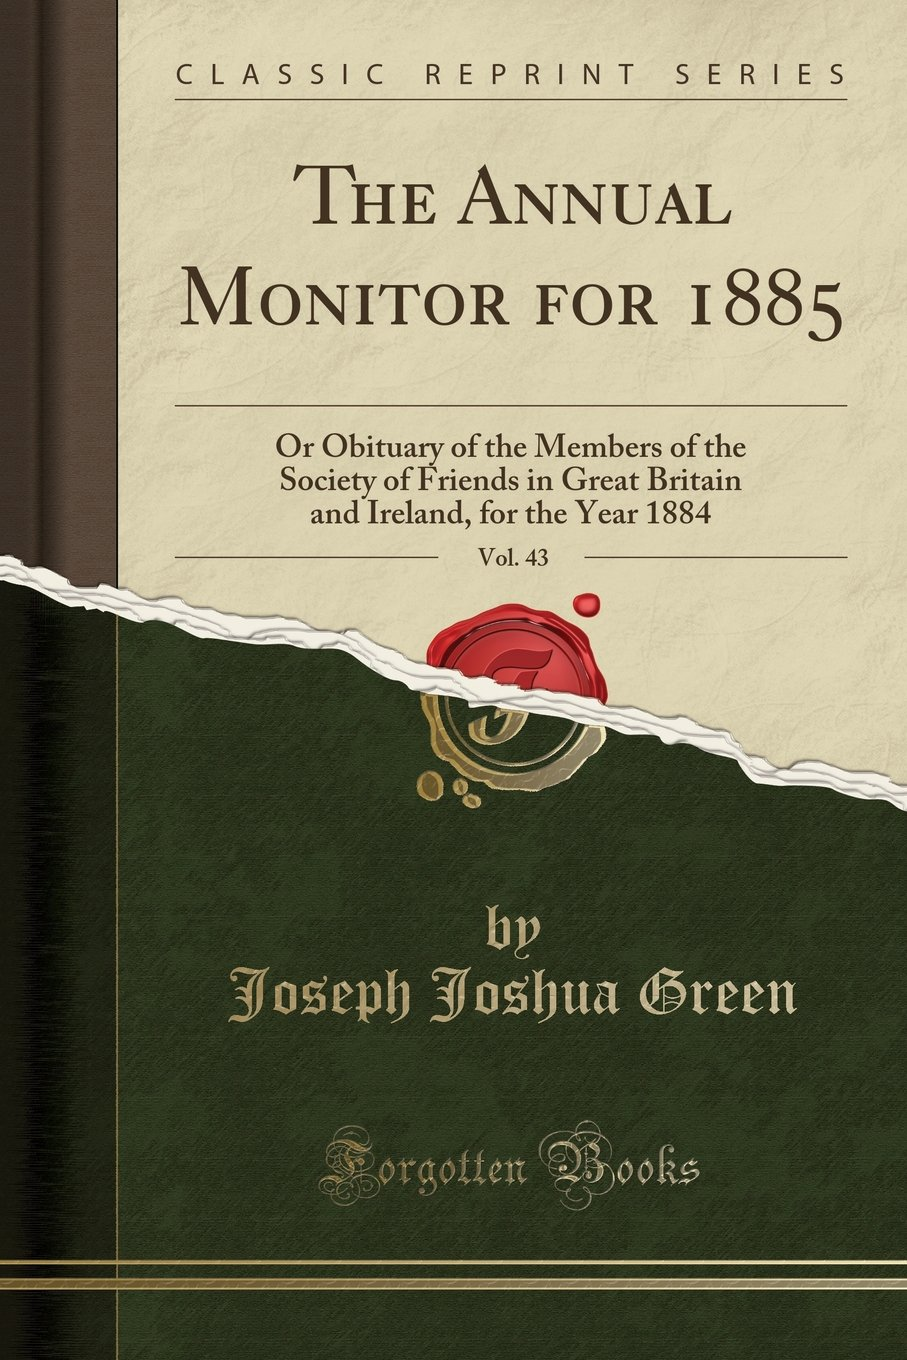 The Annual Monitor for 1885, Vol. 43: Or Obituary of the Members of the Society of Friends in Great Britain and Ireland, for the Year 1884 (Classic Reprint) pdf